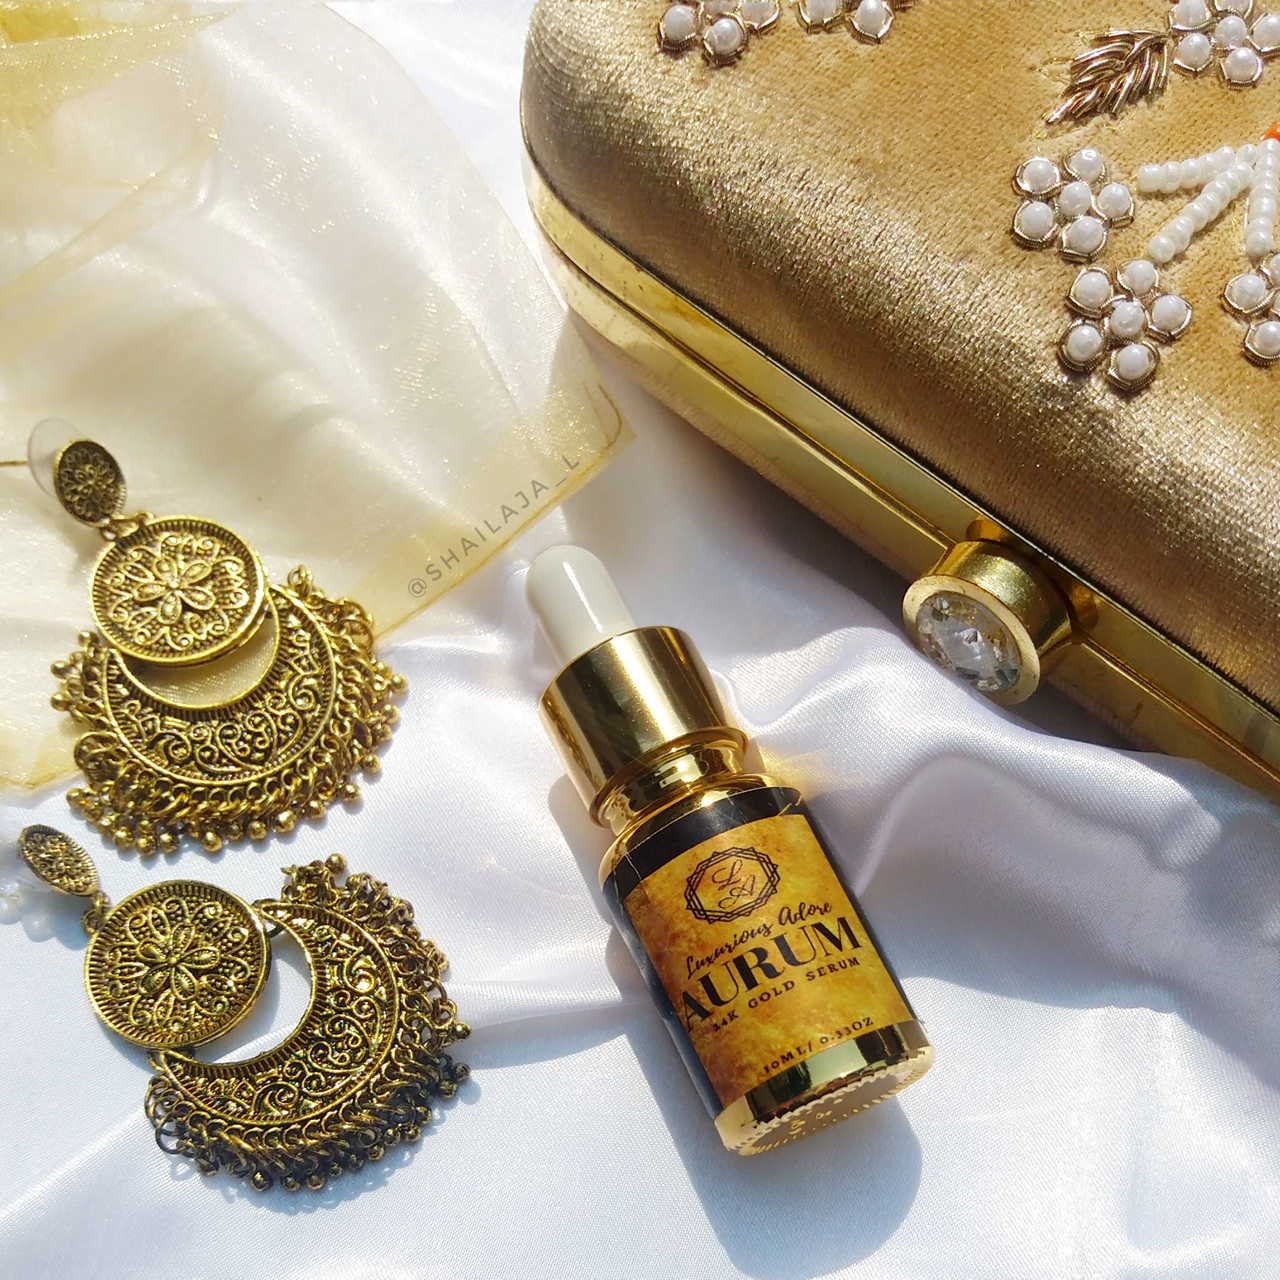 LUXURIOUS_ADORE AURUM 24K GOLD SERUM.jpg